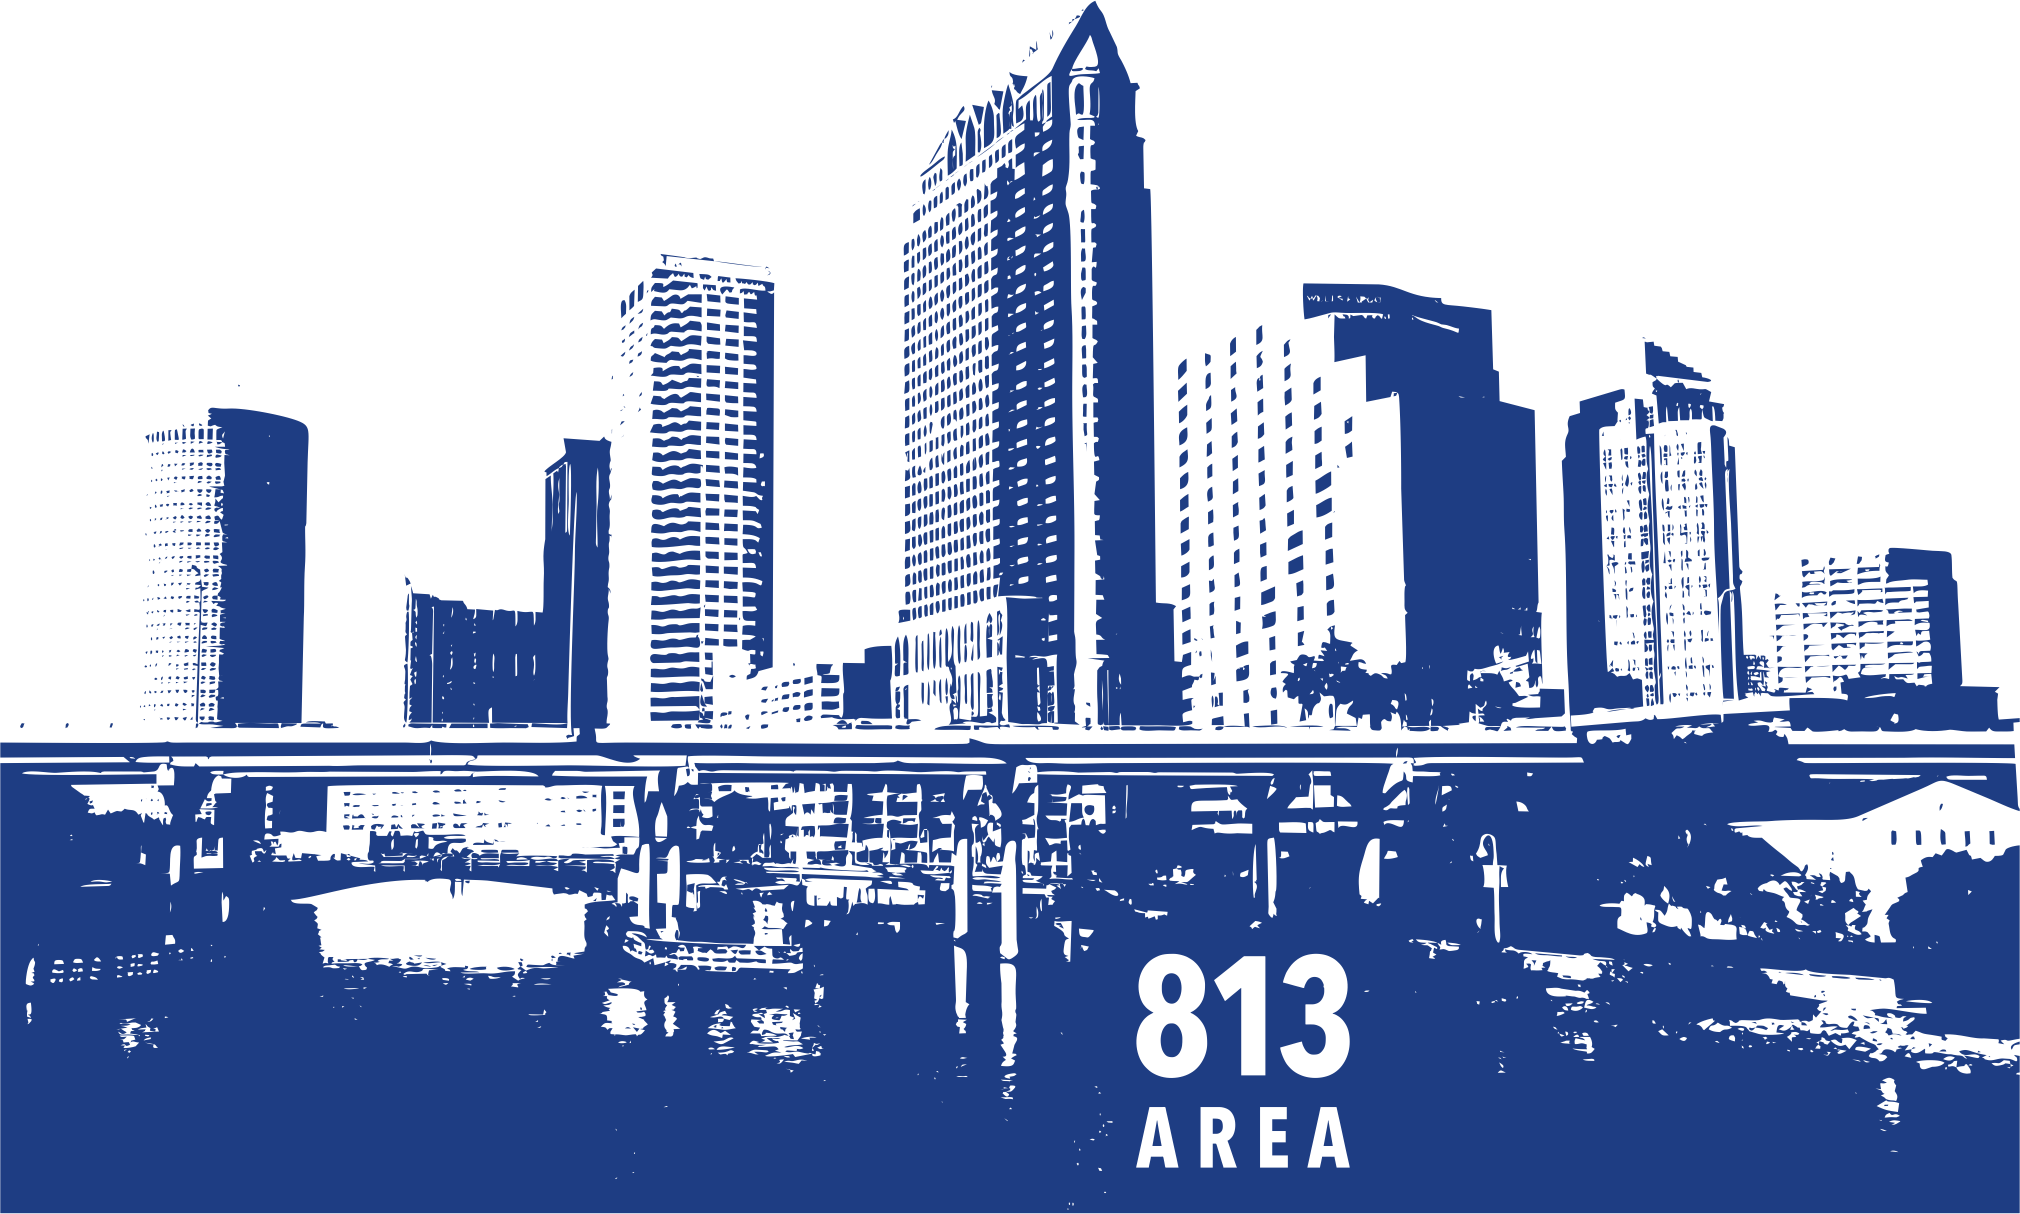 Artist wanted to Create a Tampa, FL themed design for local entertainment site www.813area.com!